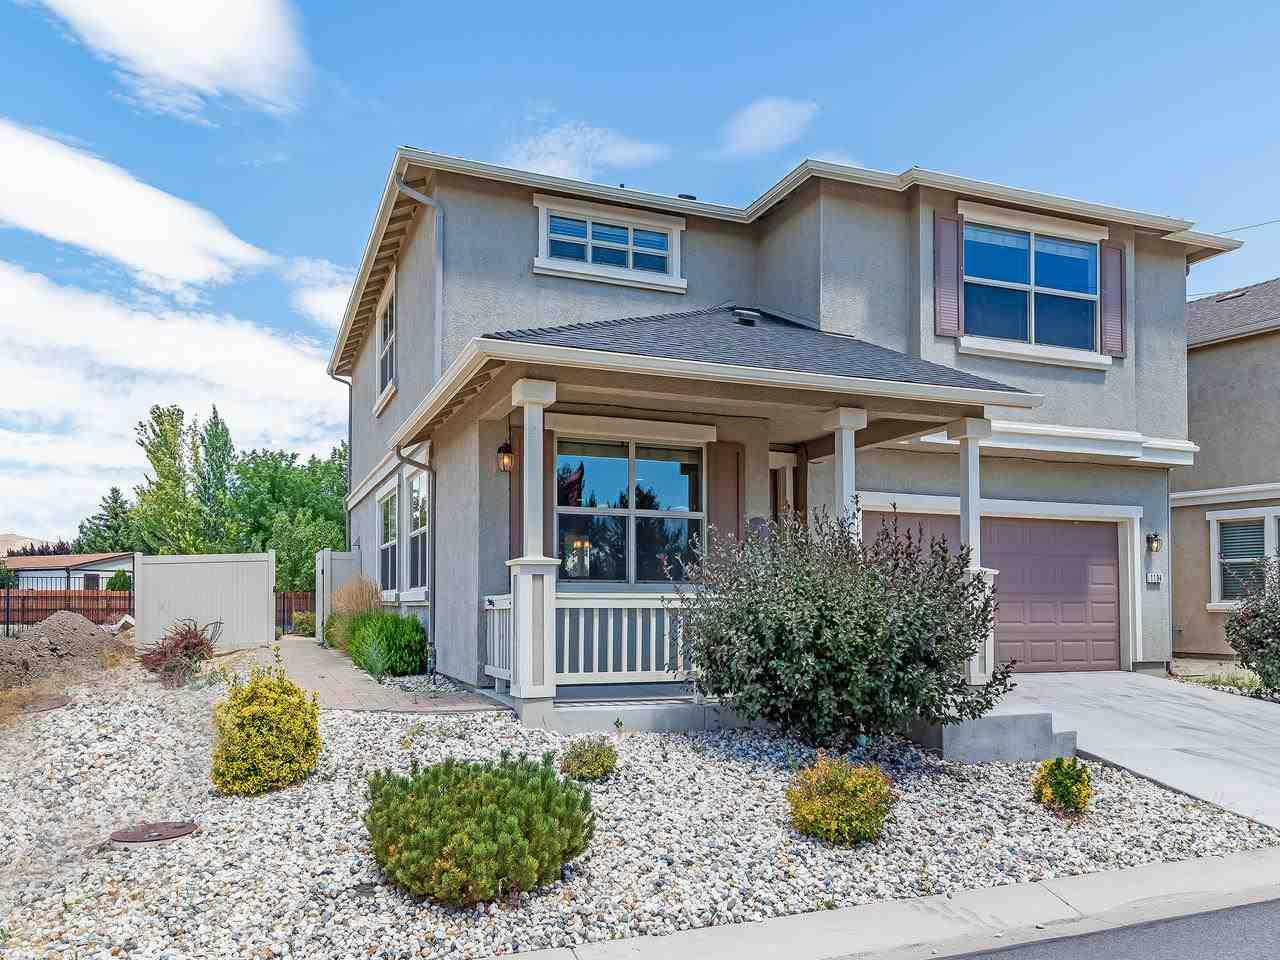 1194 Canvasback Dr - Photo 1